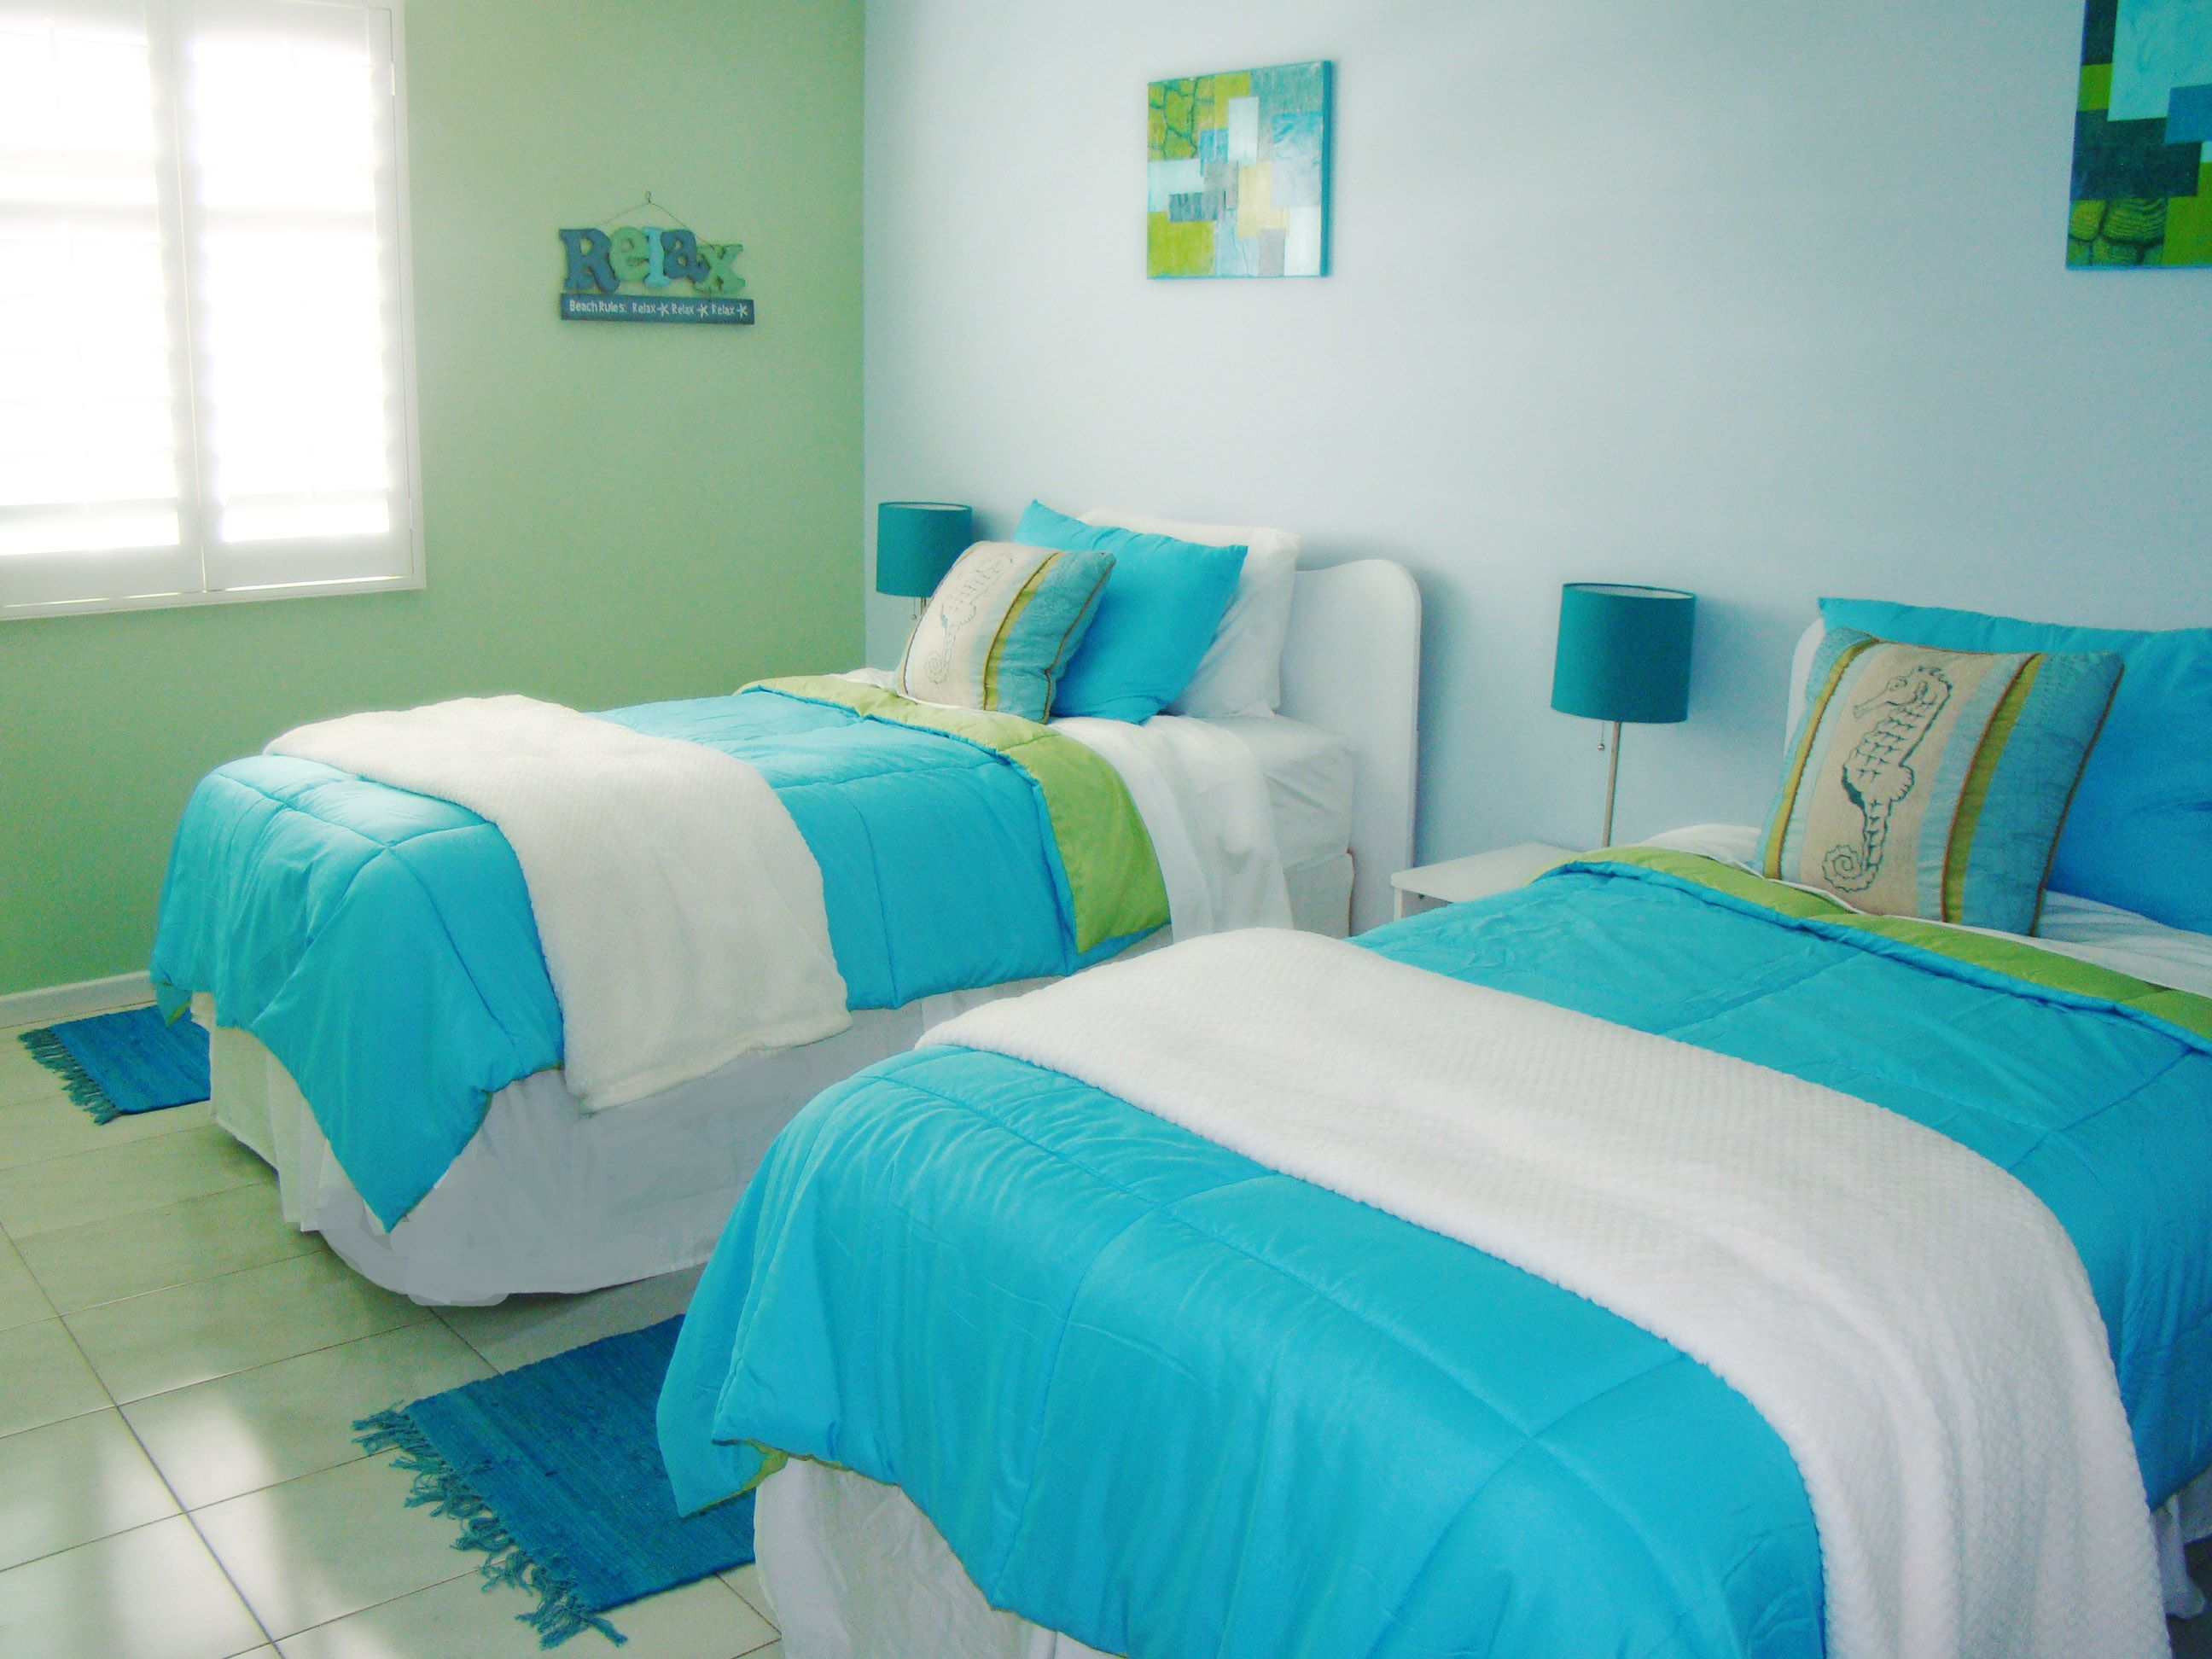 Exceptional Twin Room I Decorated For Children In Our Beach House. Fun With Aqua And  Lime